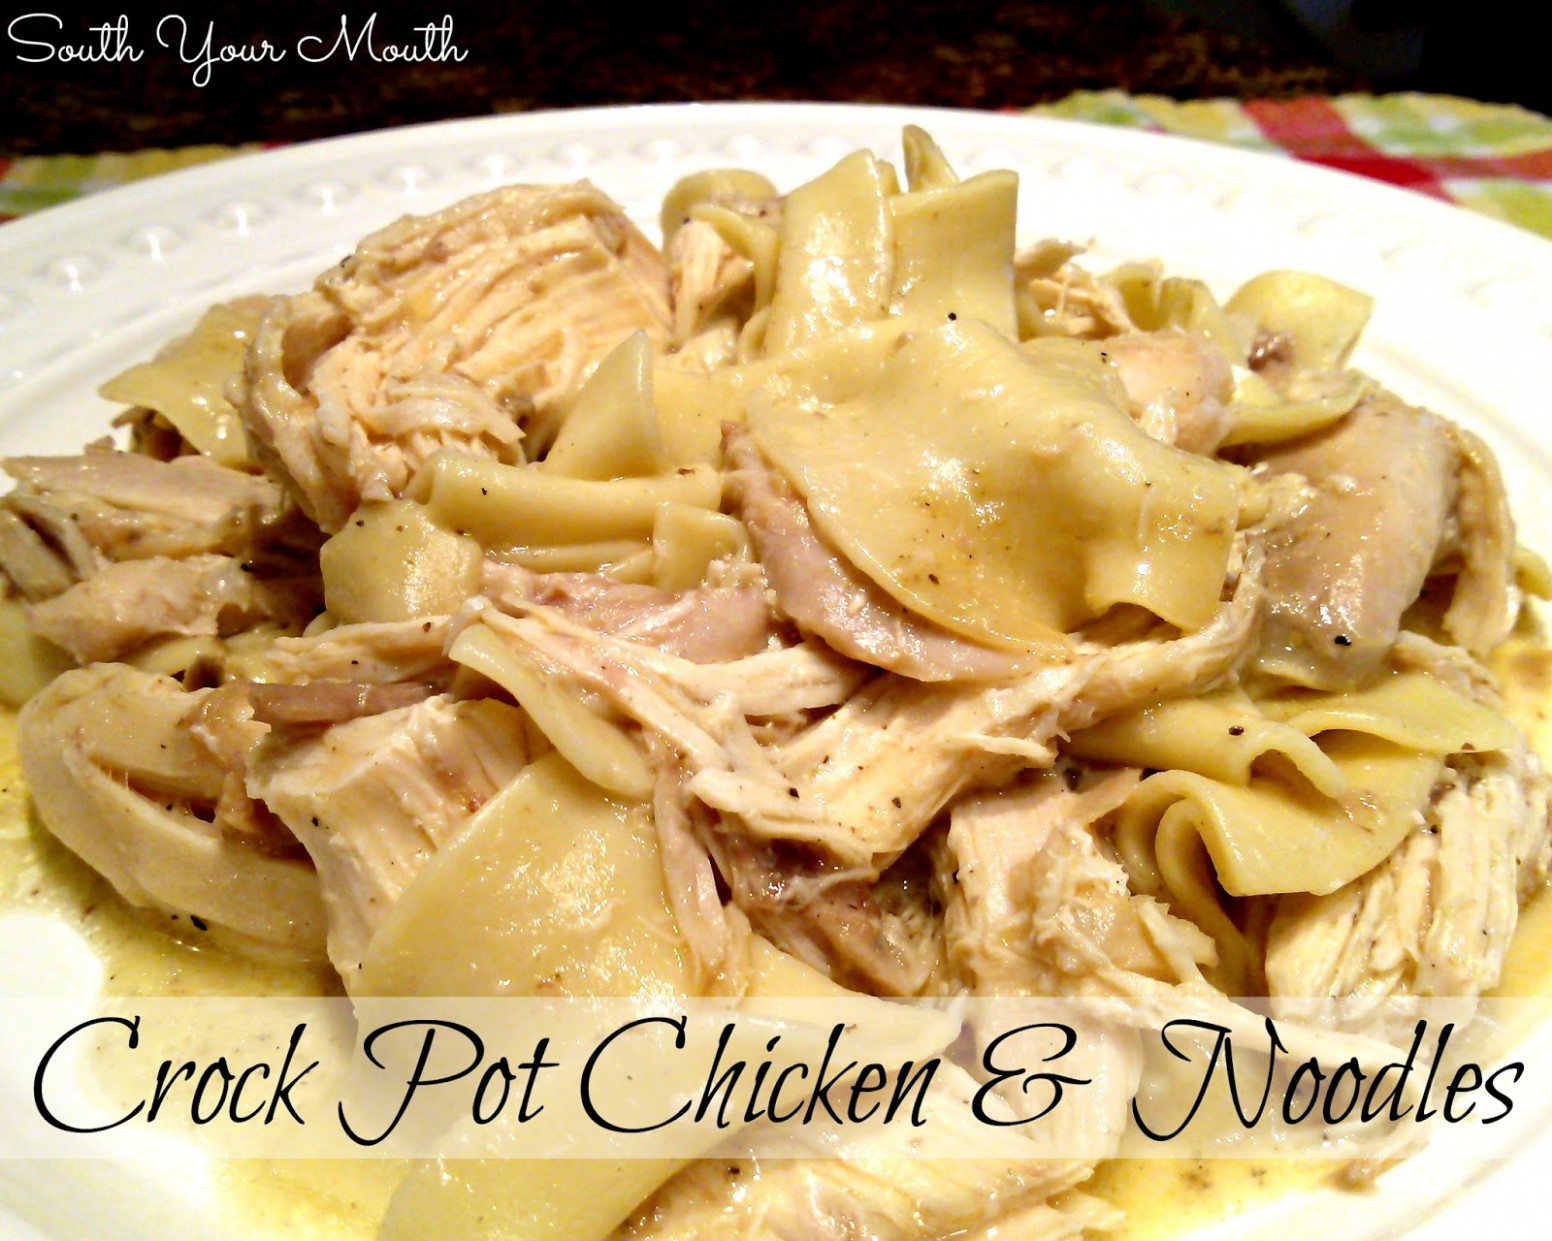 South Your Mouth: Crock Pot Chicken and Noodles - recipes egg noodles and chicken